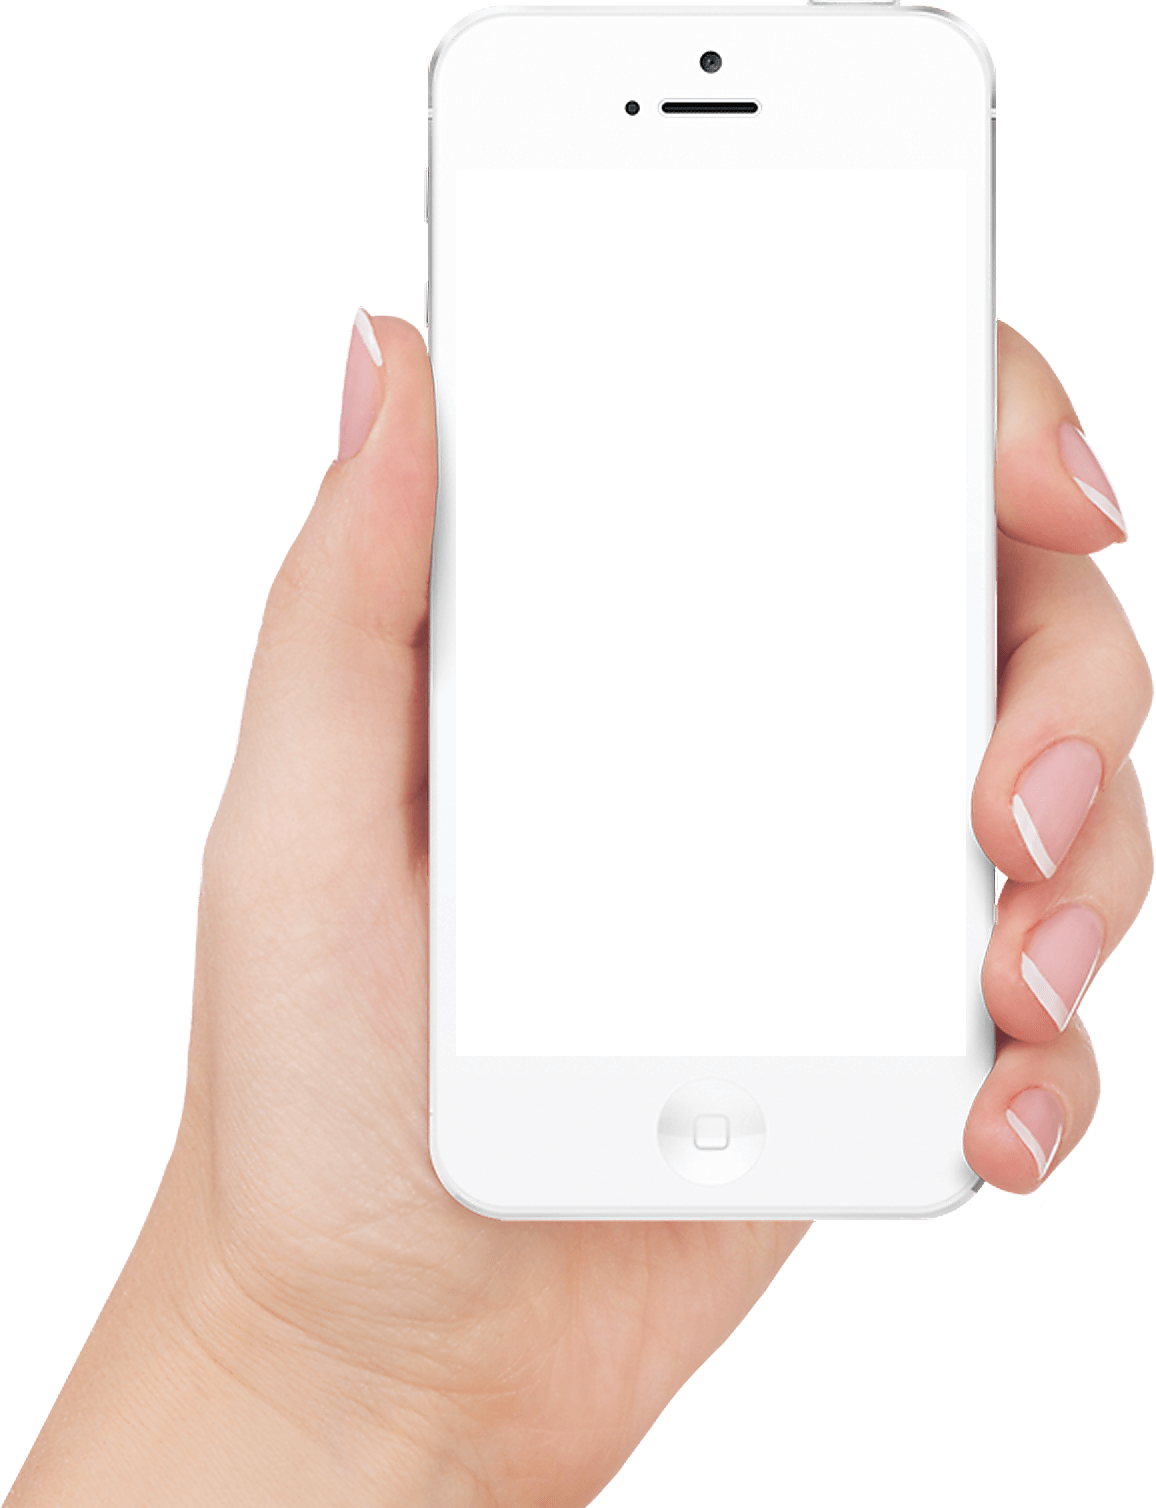 White Iphone In Hand Transparent Png Image PNG Image